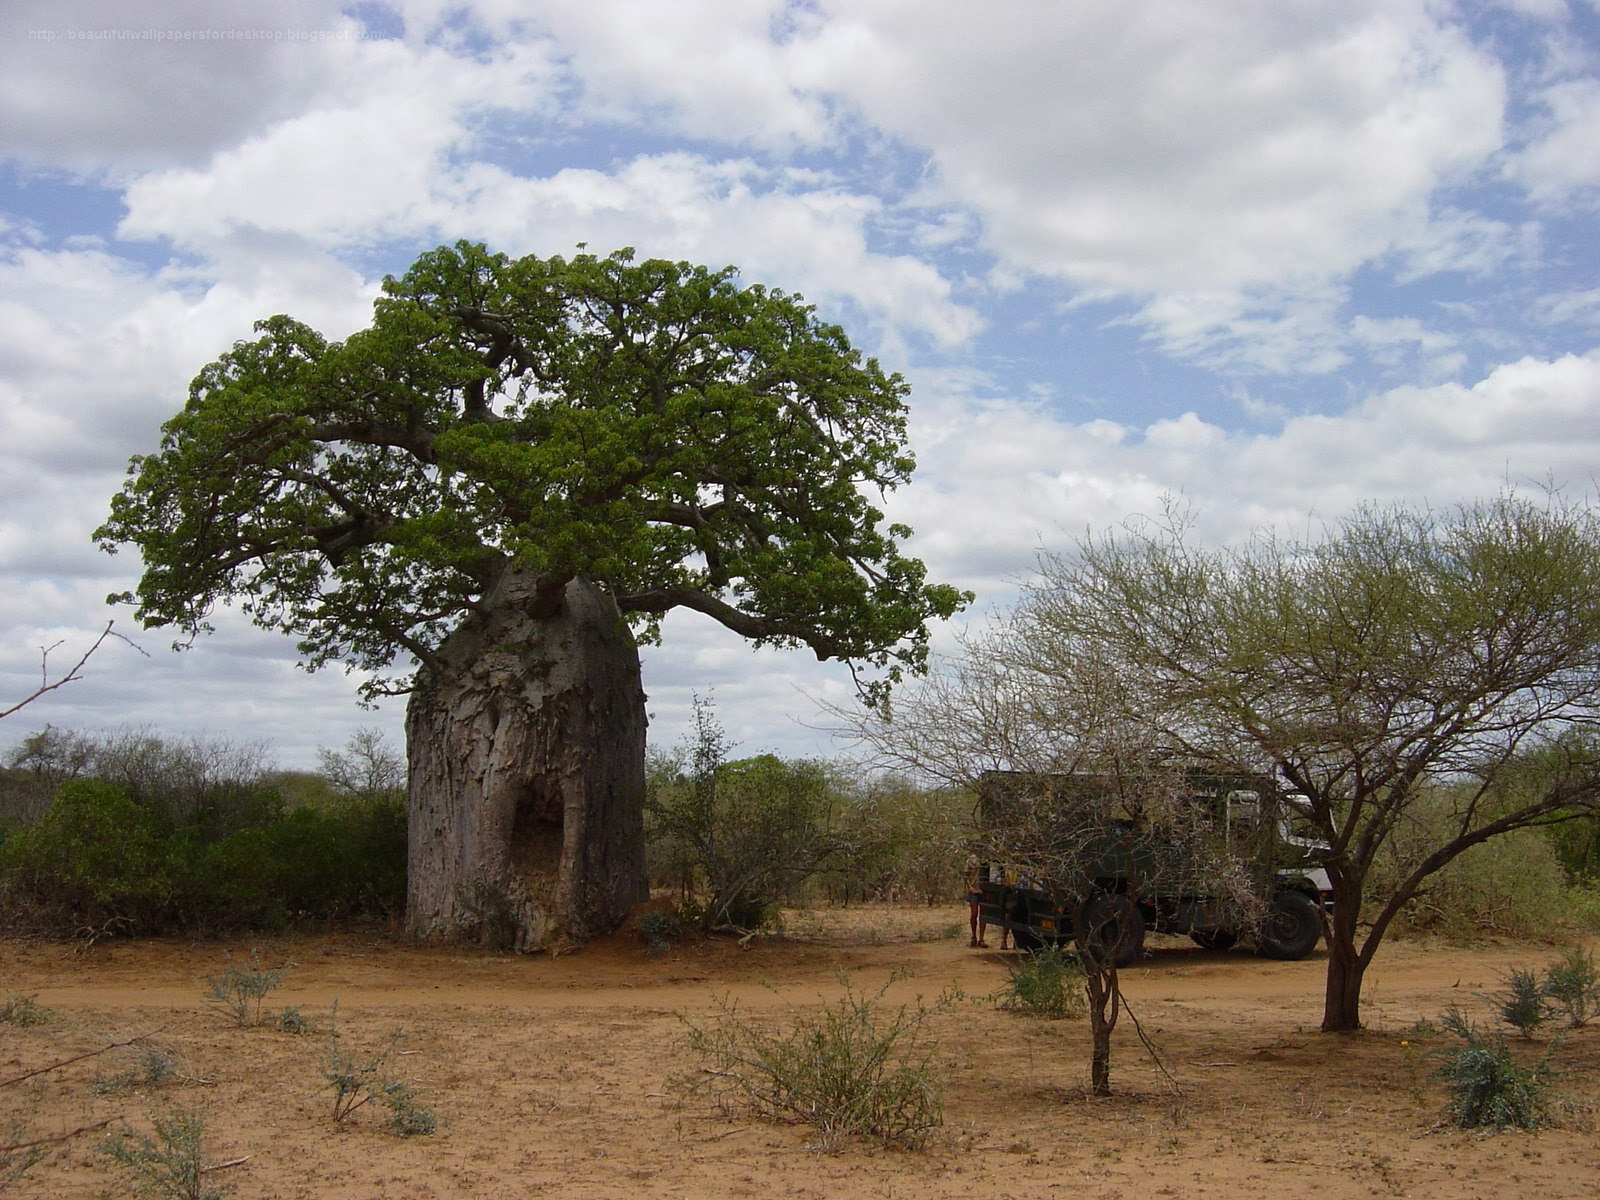 http://beautifulwallpapersfordesktop.blogspot.com/2014/01/travel-baobabs-wallpapers.html